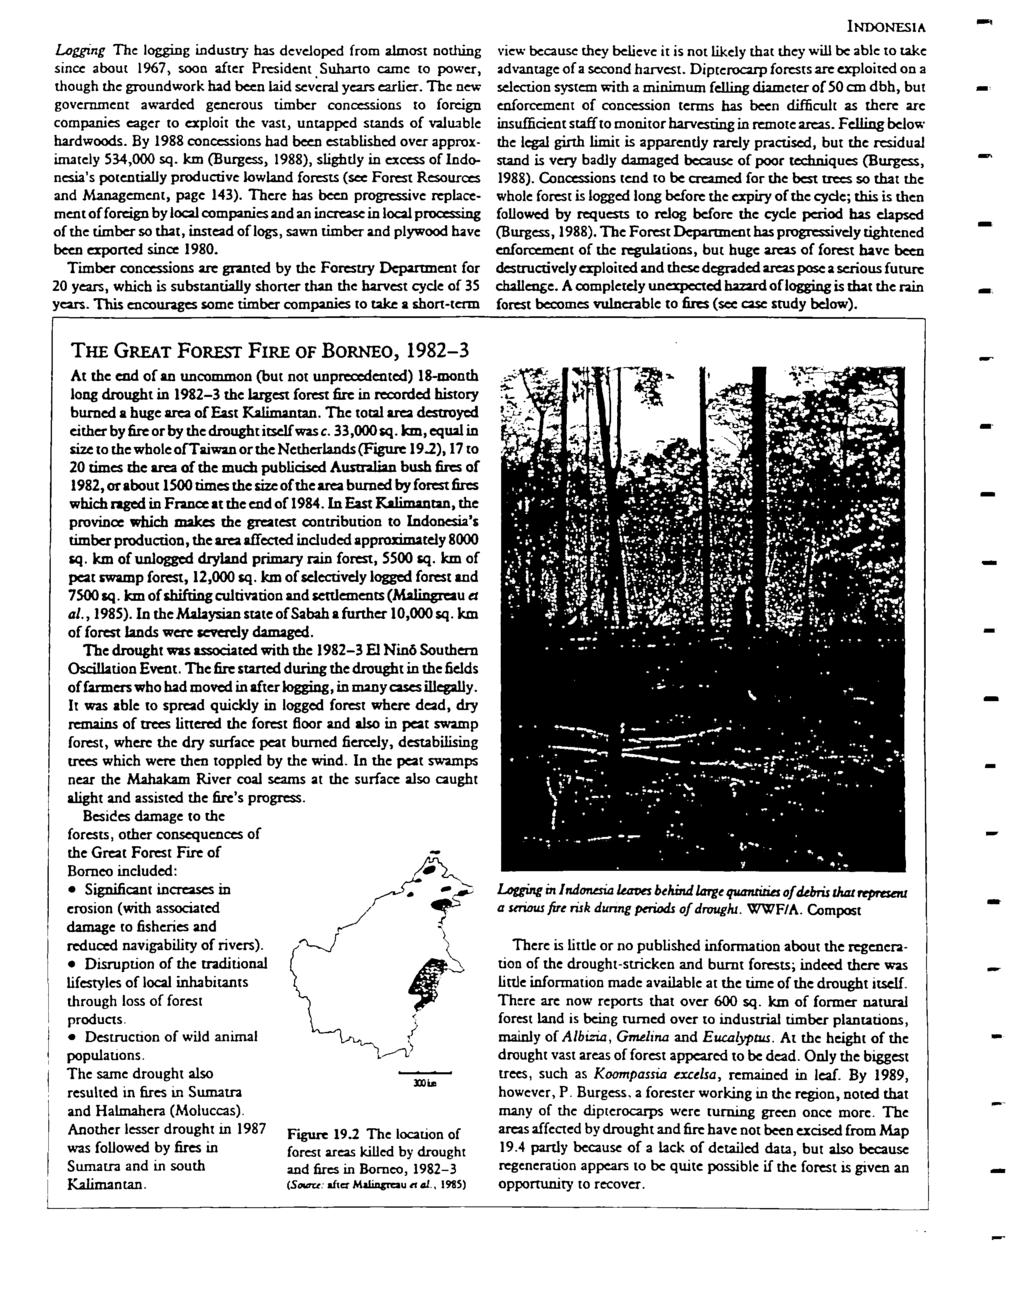 Legging The logging industy has devcloped fom almost nothing since about 1967, soon afte Pesident Suhato came to powe, though the goundwok had been laid sc:v~al yeas ealie.